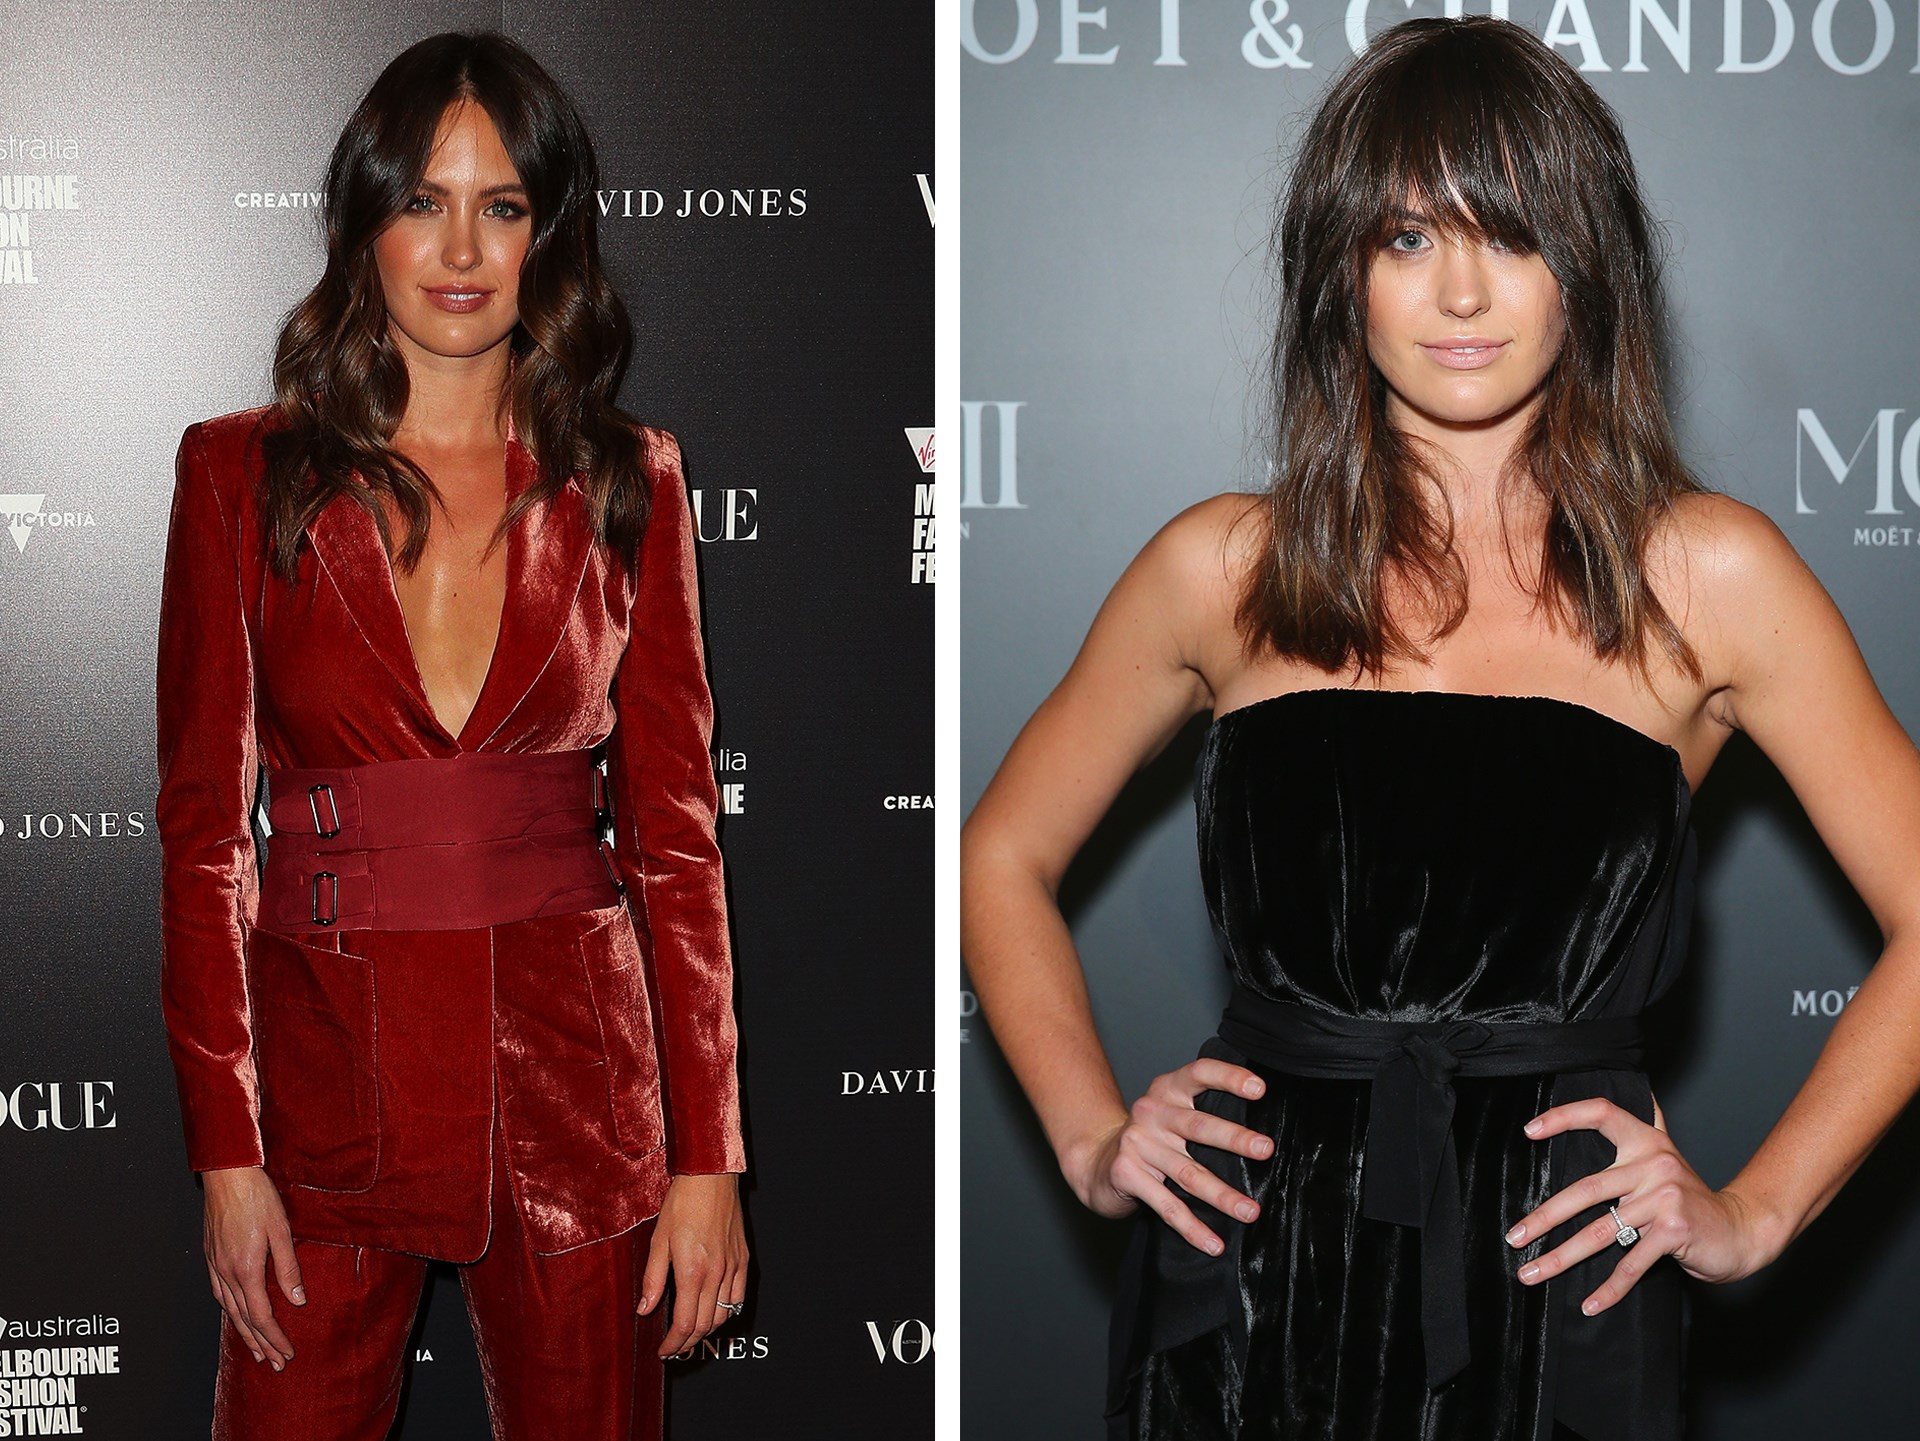 Fresh off the Melbourne Fashion Festival runway, Jesinta Franklin decided to switch up her look and rocked a shaggy [fringe](http://www.nowtolove.com.au/beauty/hair/celebrities-with-and-without-fringes-35839) at last night's Moet & Chandon MCIII Launch at the Sydney Opera House. Is it real, is it a clip-in? Guess we won't find out until her next Instagram post.